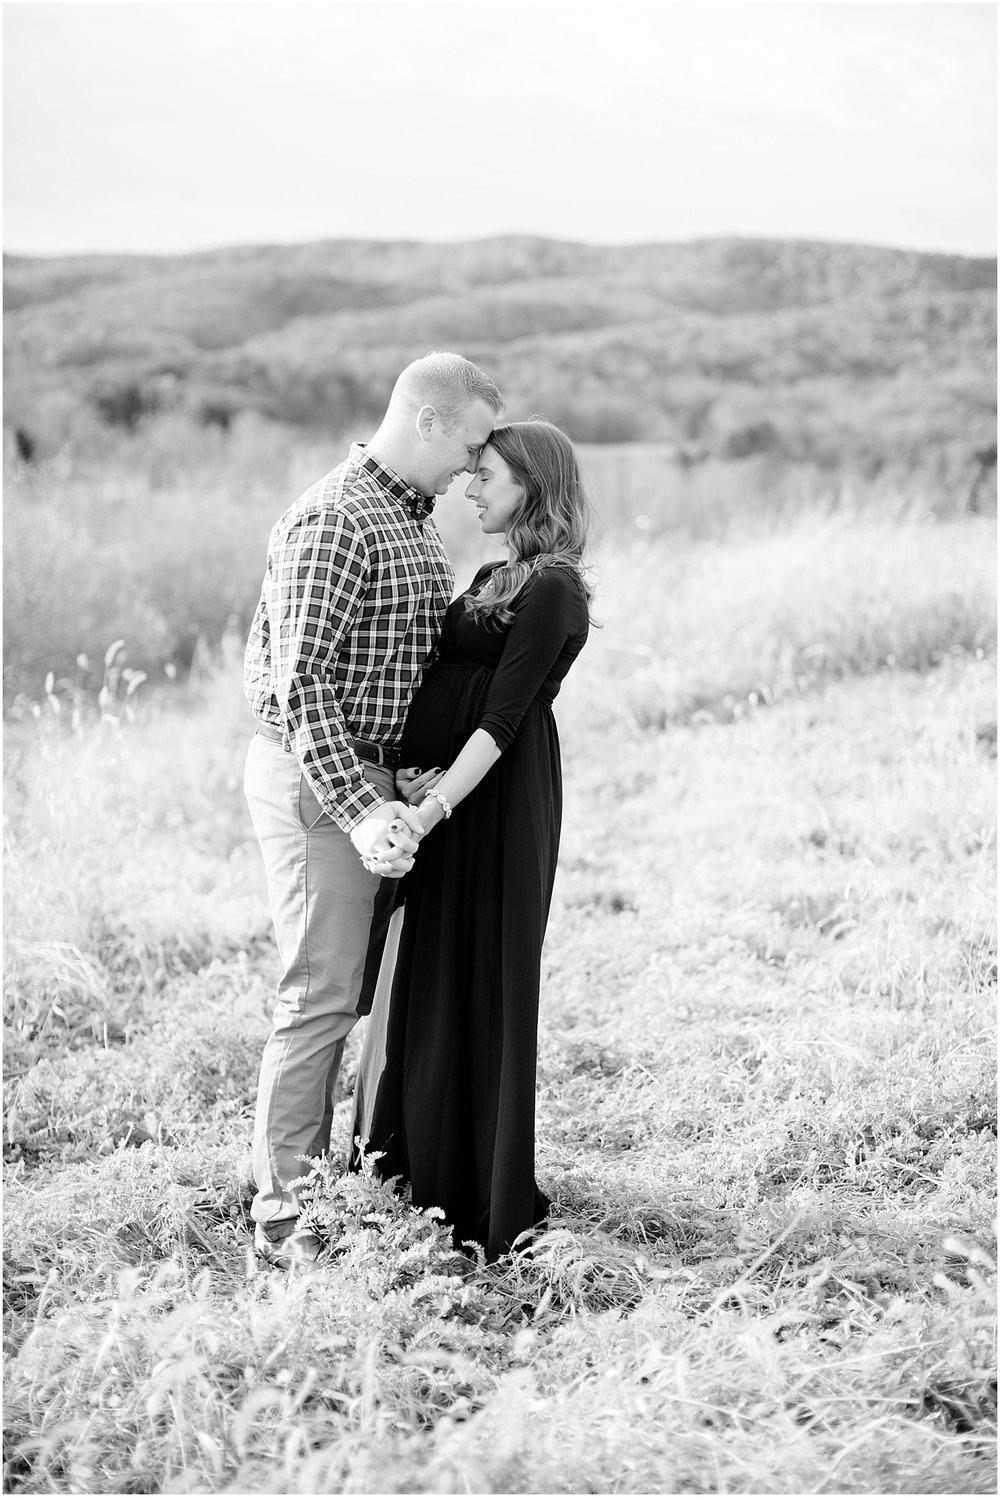 Ashley Powell Photography Hannah Fallion Maternity Blog Images_0011.jpg